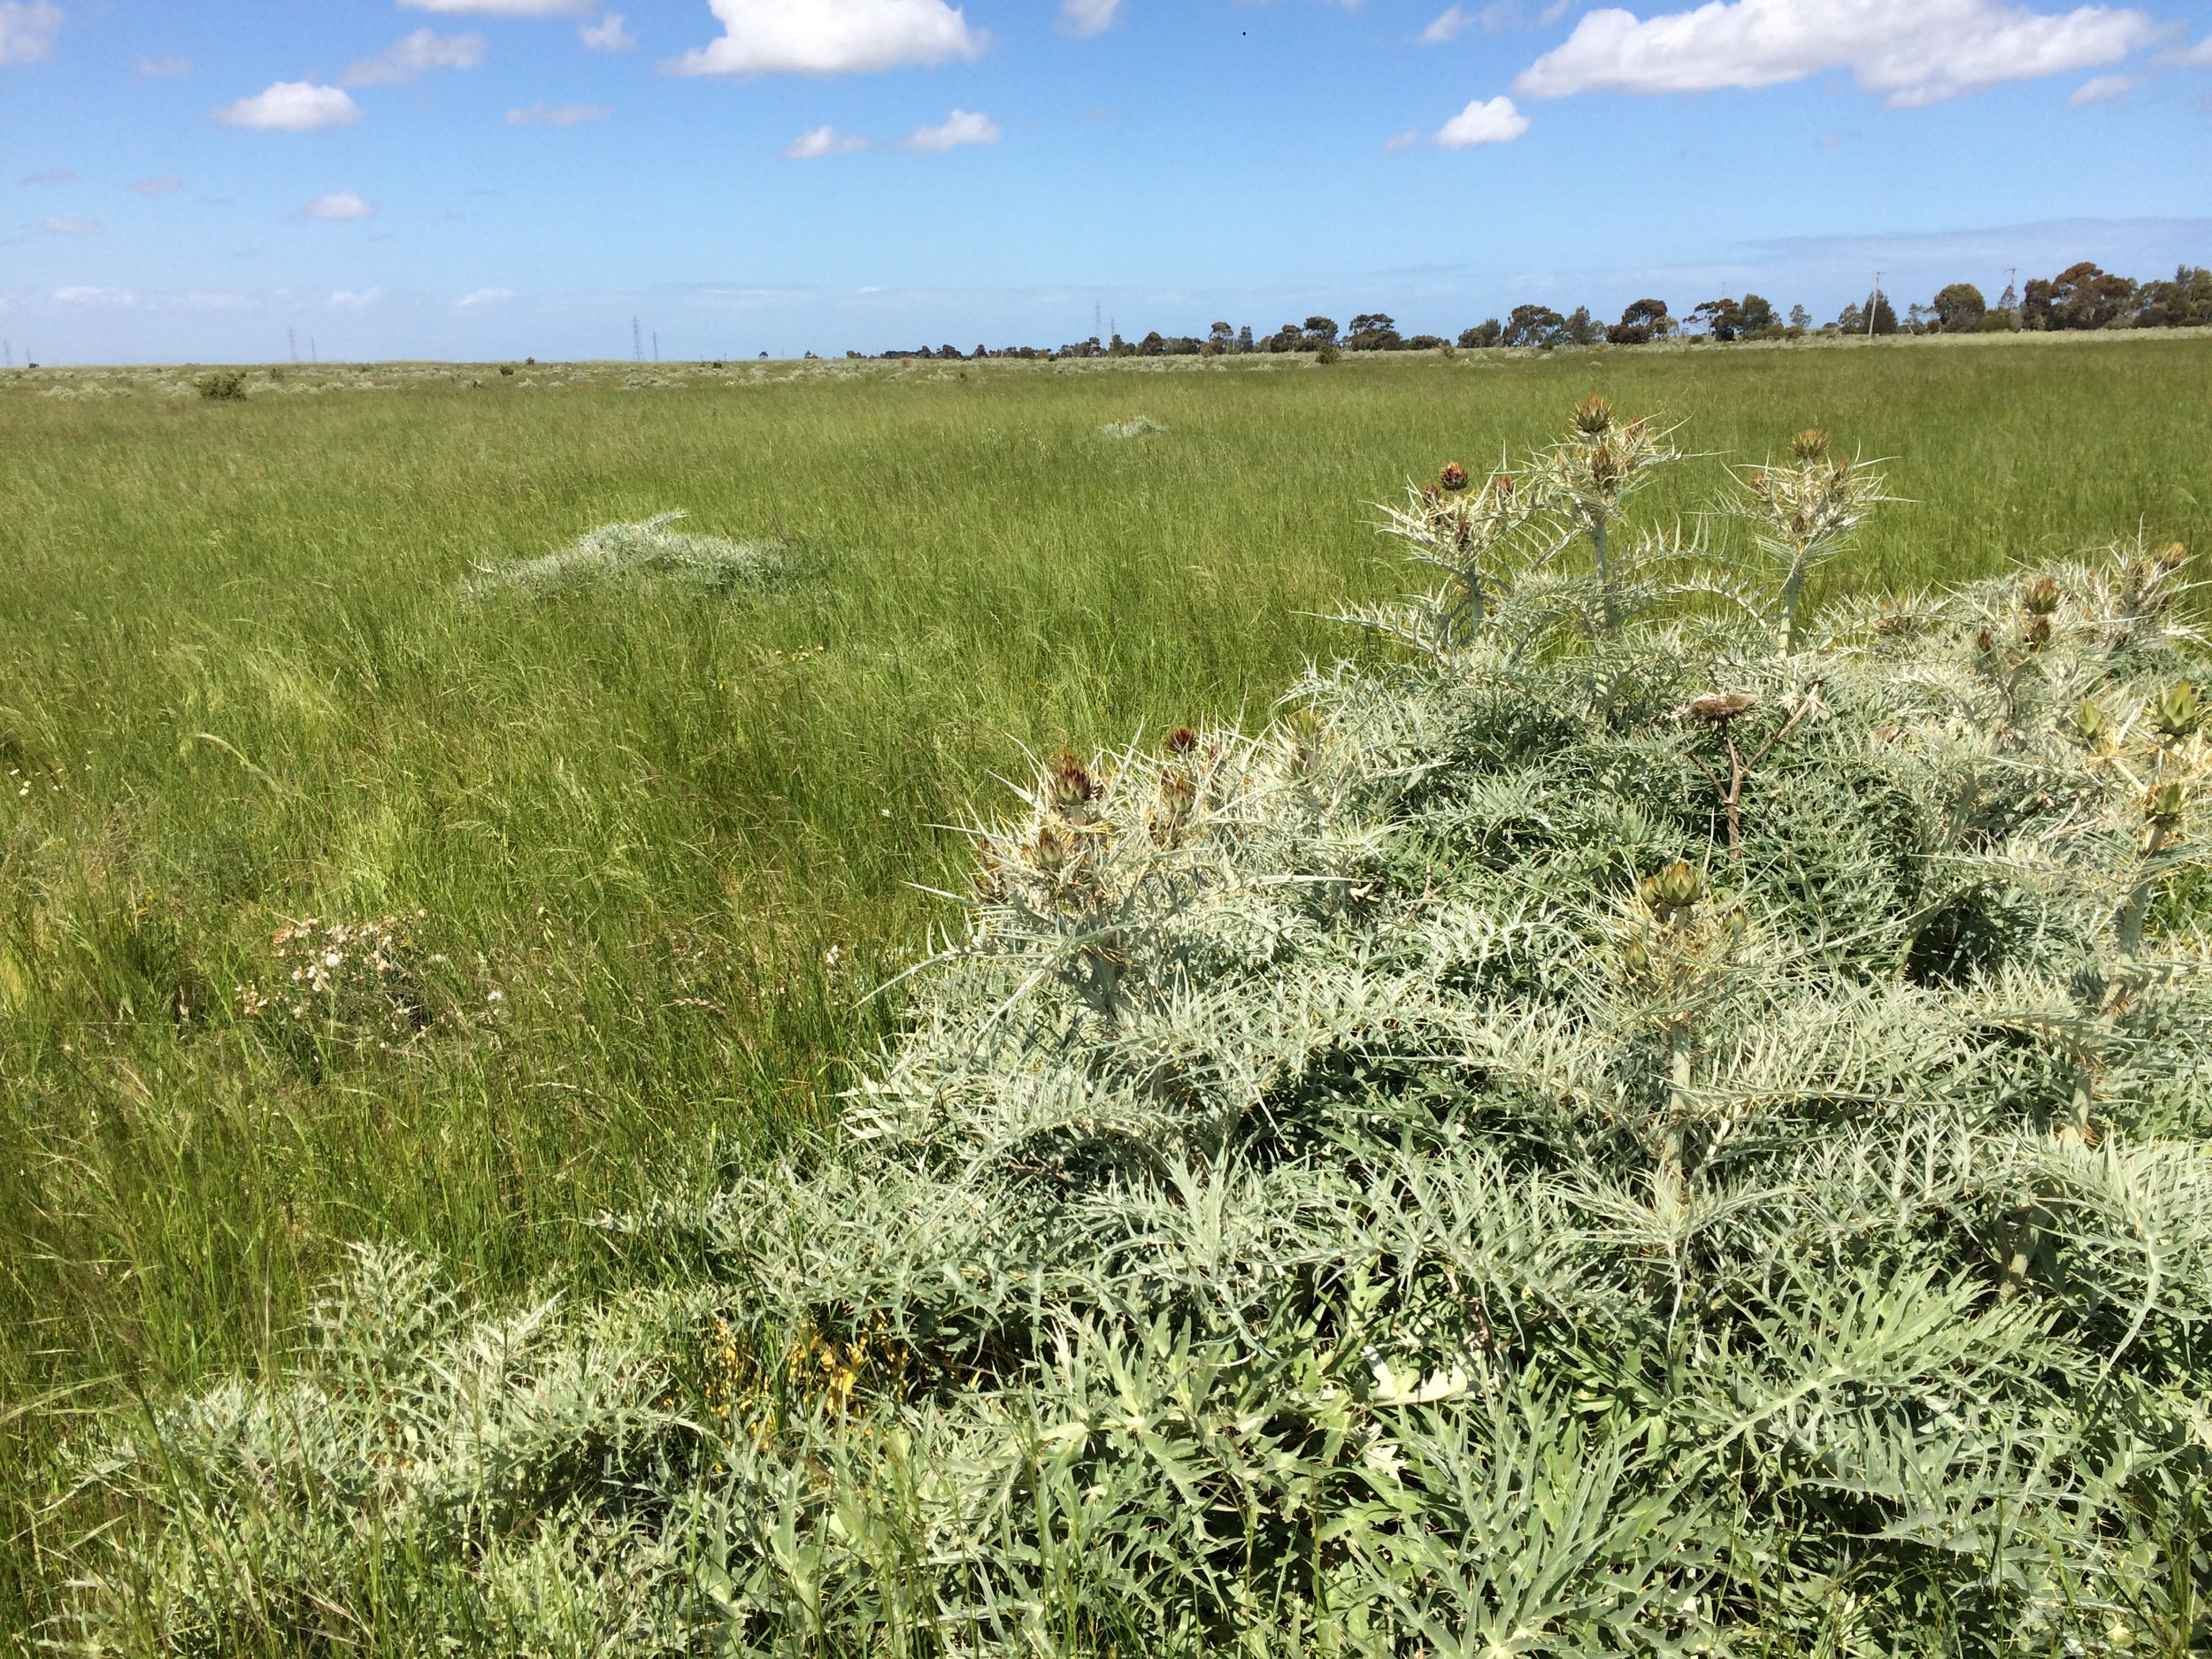 Normal   0           false   false   false     EN-GB   X-NONE   X-NONE                                                                                                                                                                                                                                                                                                                                                                                                                                                                                                                                                                                                                                                                                                                                                                                                                                                          Introduced artichoke thistles tower above the surrounding grasses and herbs, but offer great perches for Eurasian skylarks and Horsfield's bush larks to sing from.  Image: Rowan Mott